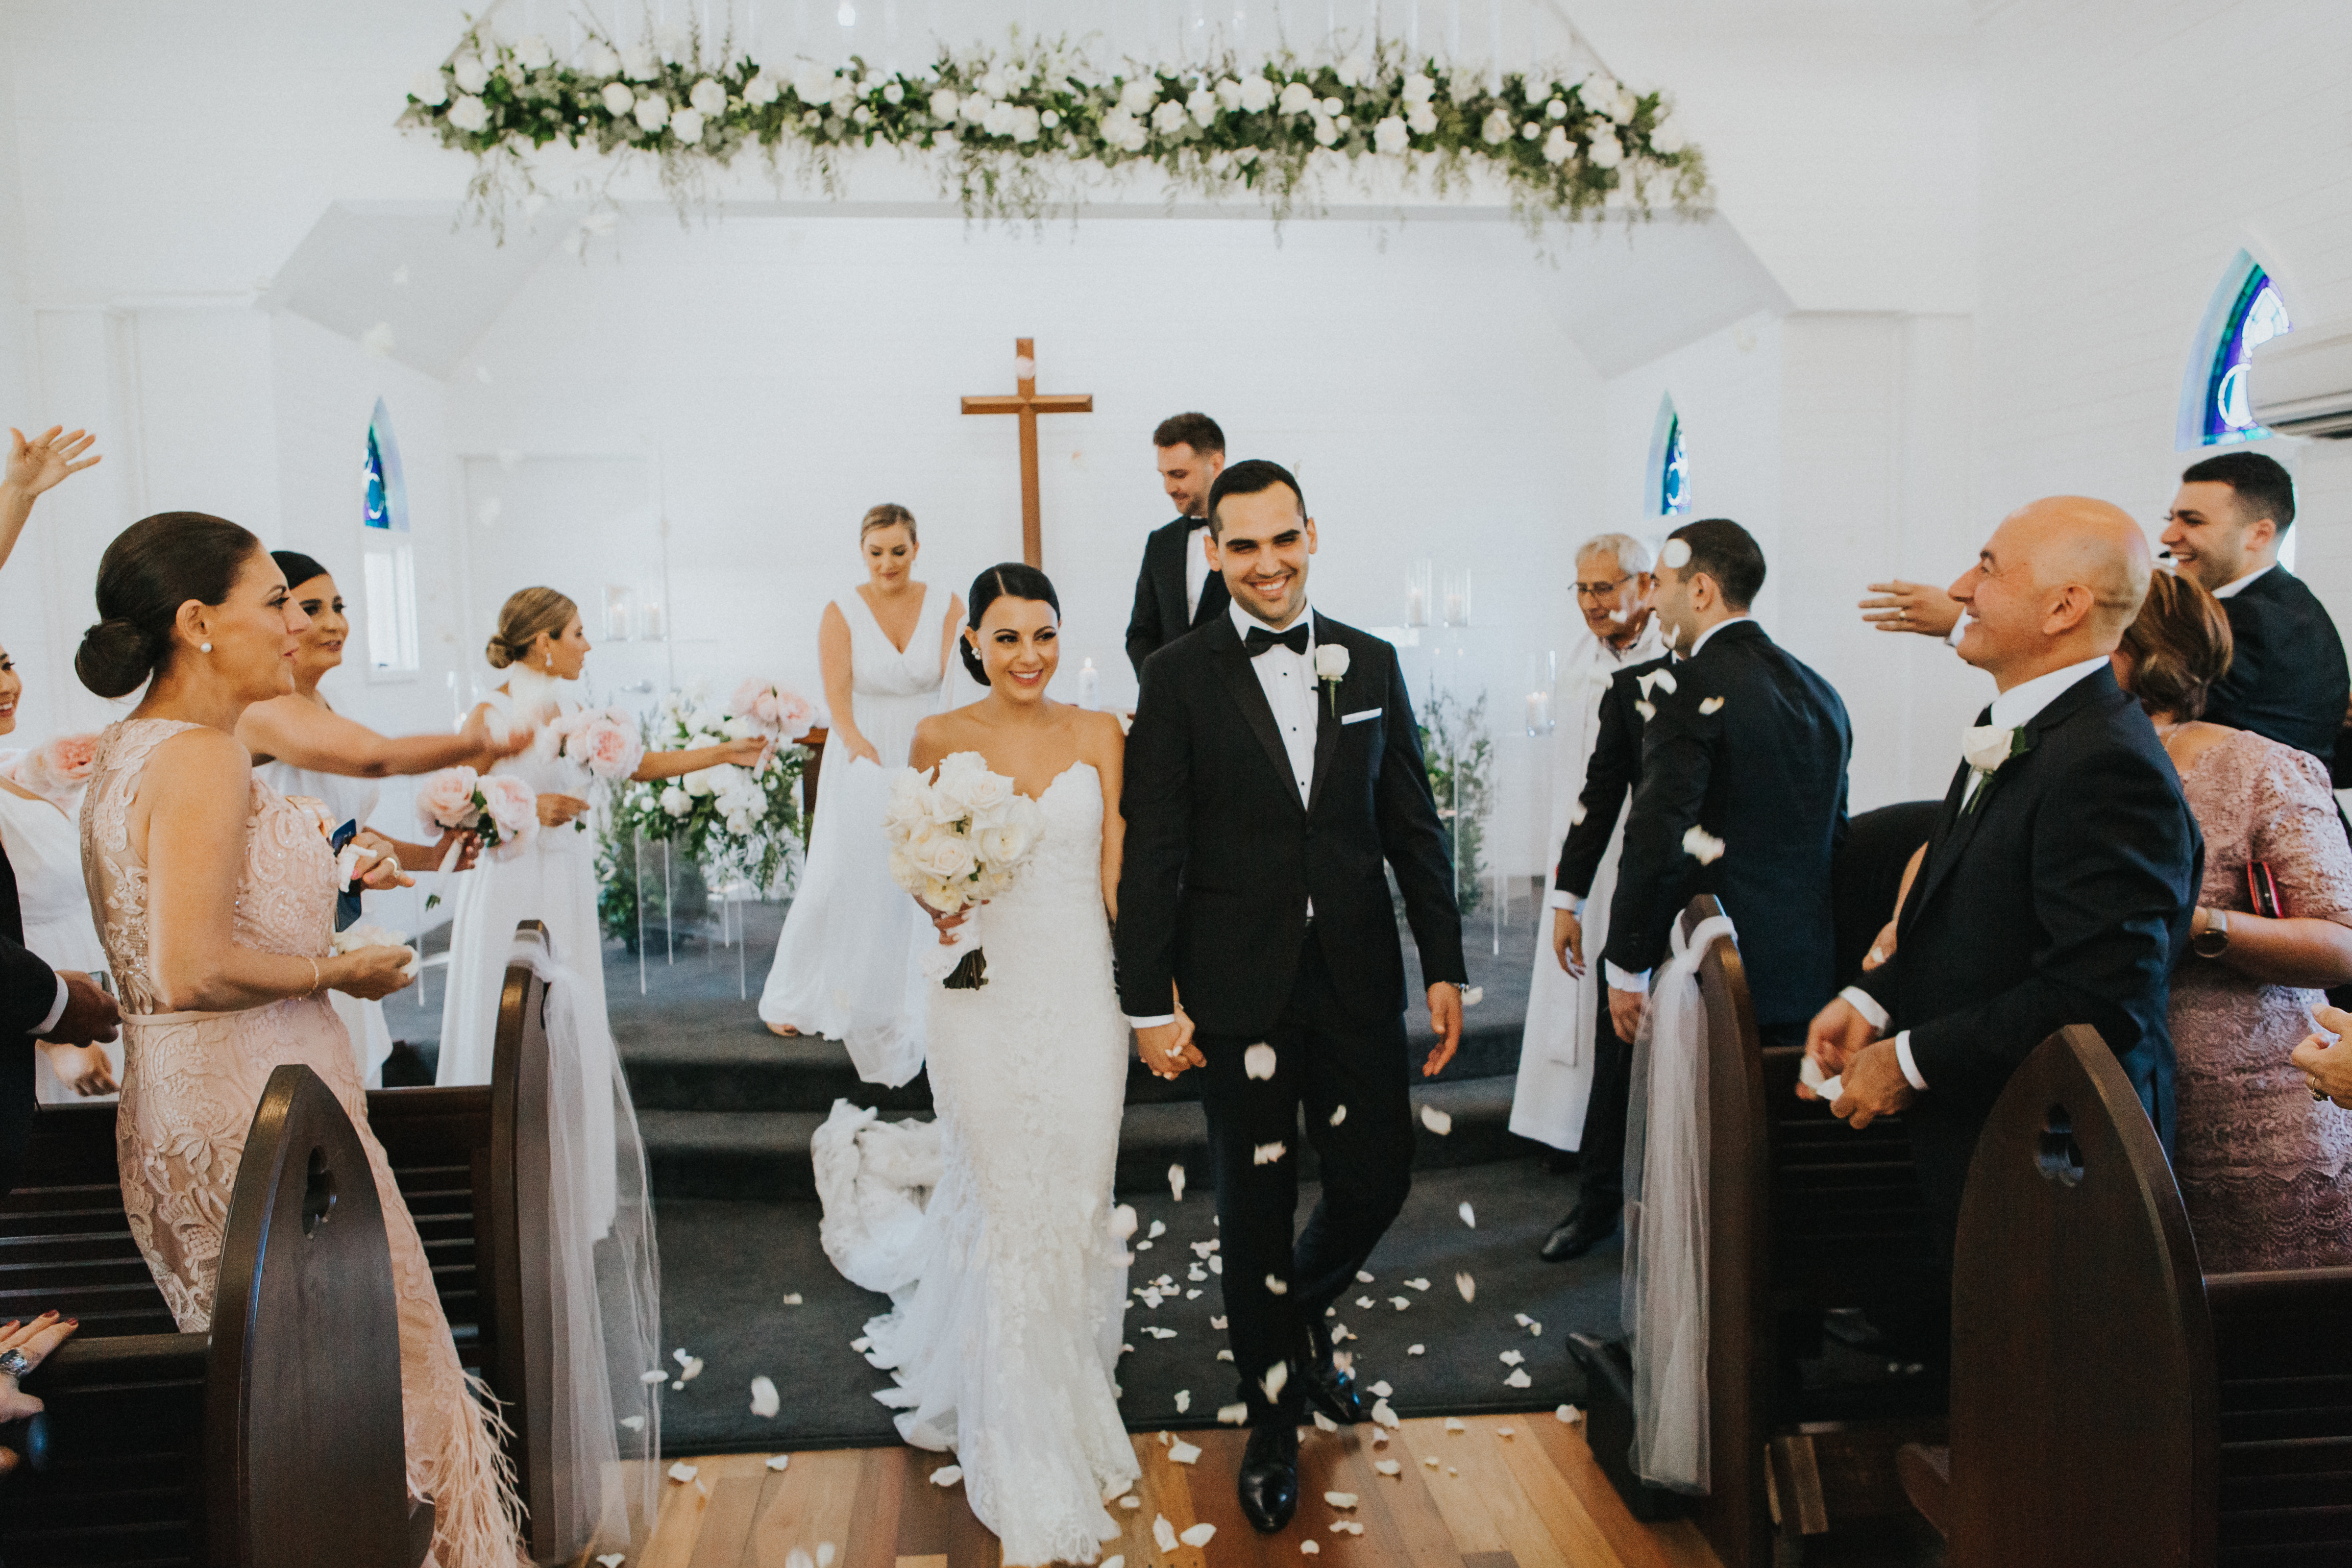 https://www.hamiltonislandweddings.com/wp-content/uploads/2019/02/1810200555.jpg